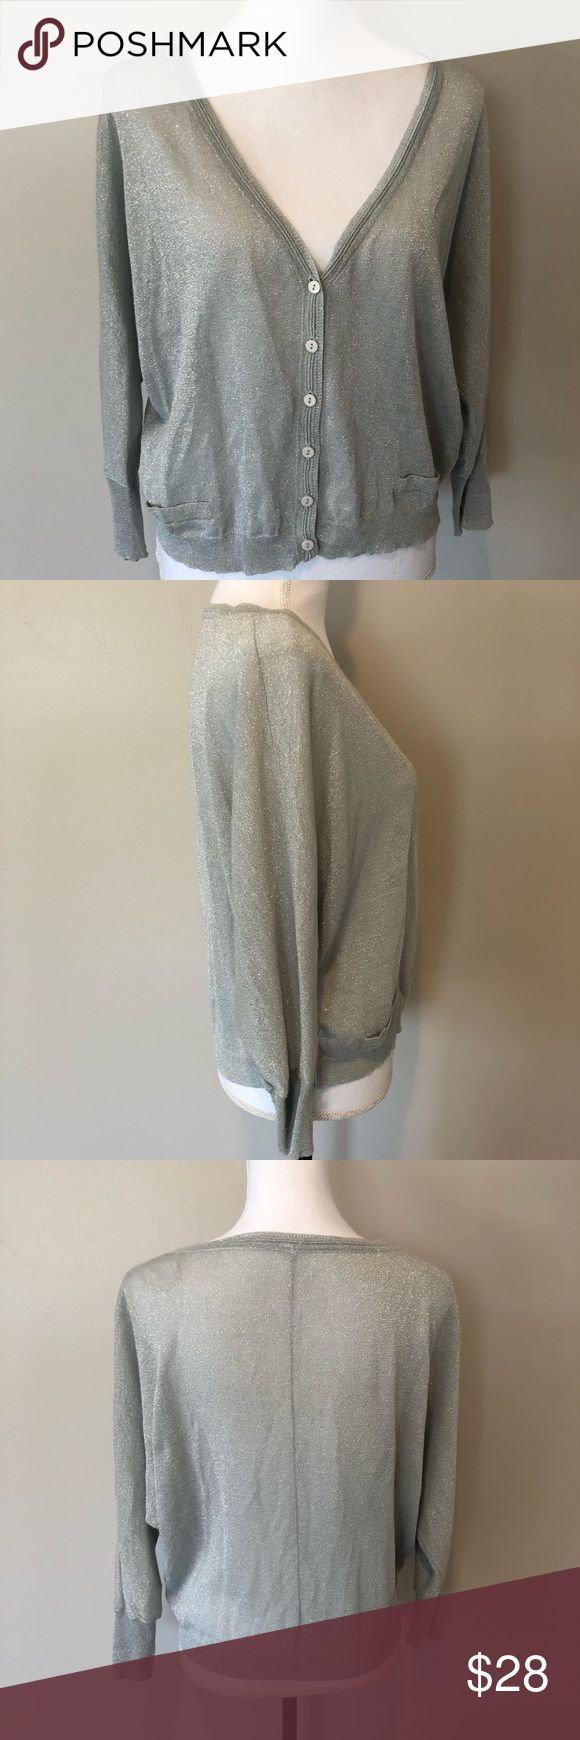 Free People Silver Metallic Cardigan Size M Silver/ metallic gray front button cardigan. Loose fit. Thin. About 22.5 inches across chest, 21 inches long. Free People Sweaters Cardigans